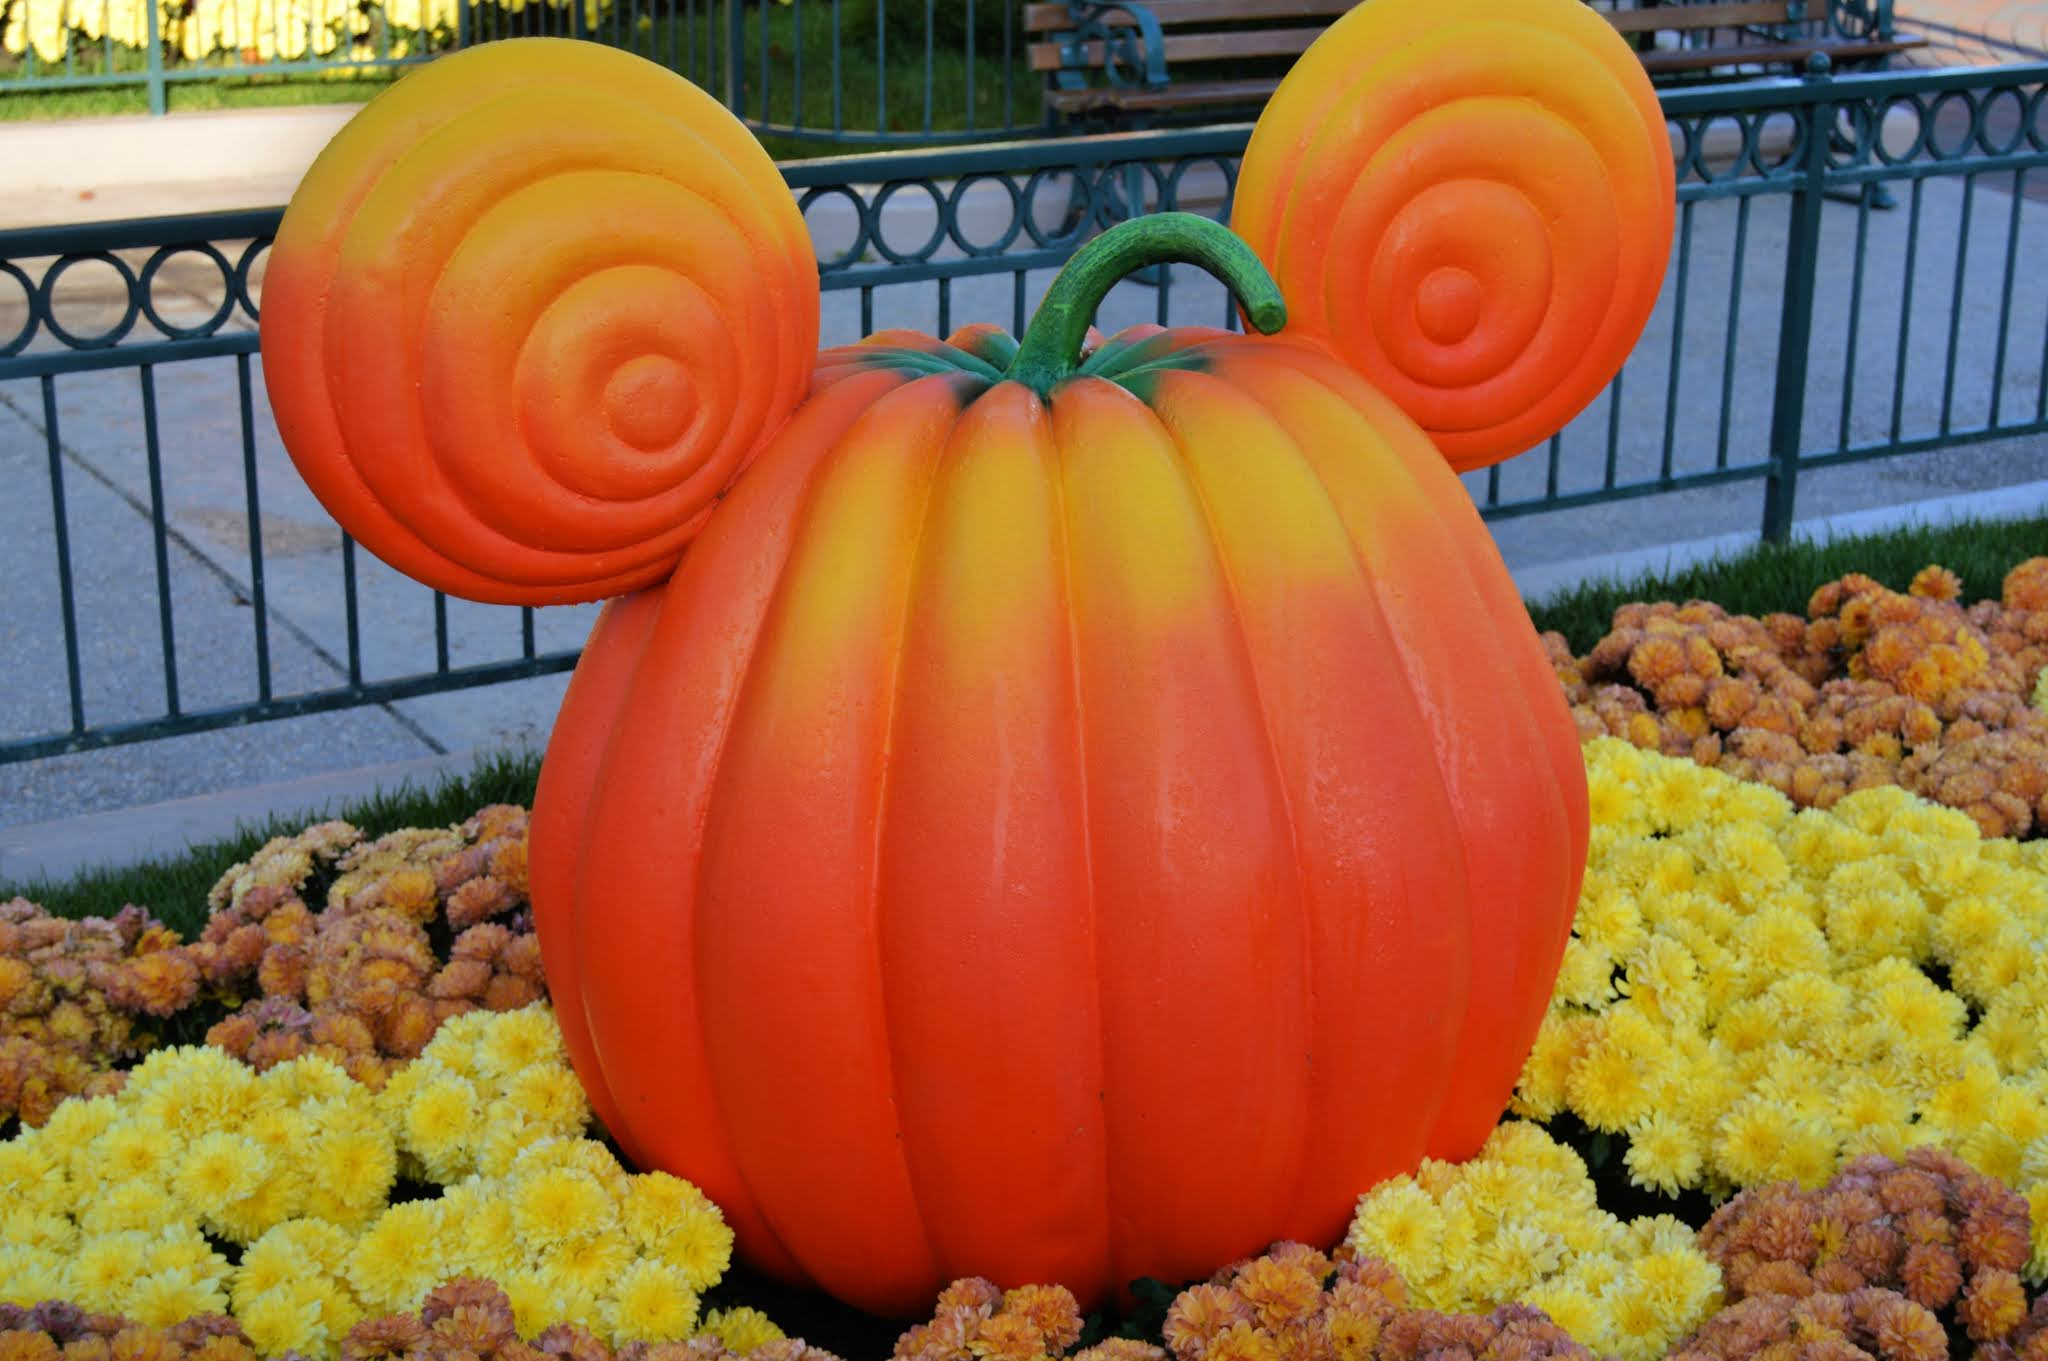 Pumpkin at Disneyland Paris